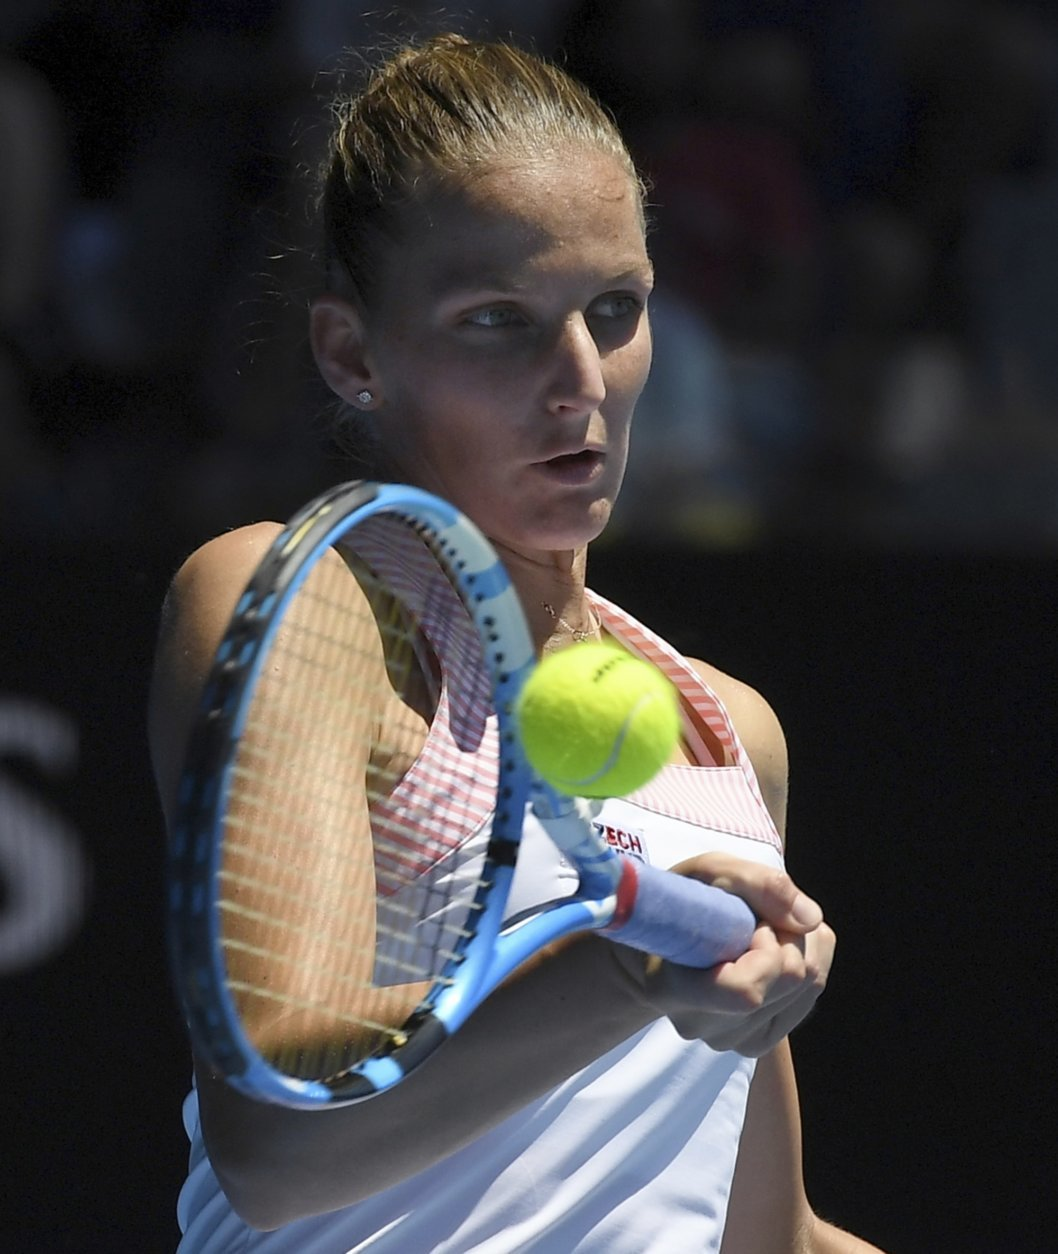 Karolina Pliskova of the Czech Republic makes a forehand return to United States' Serena Williams during their quarterfinal match at the Australian Open tennis championships in Melbourne, Australia, Wednesday, Jan. 23, 2019. (AP Photo/Andy Brownbill)